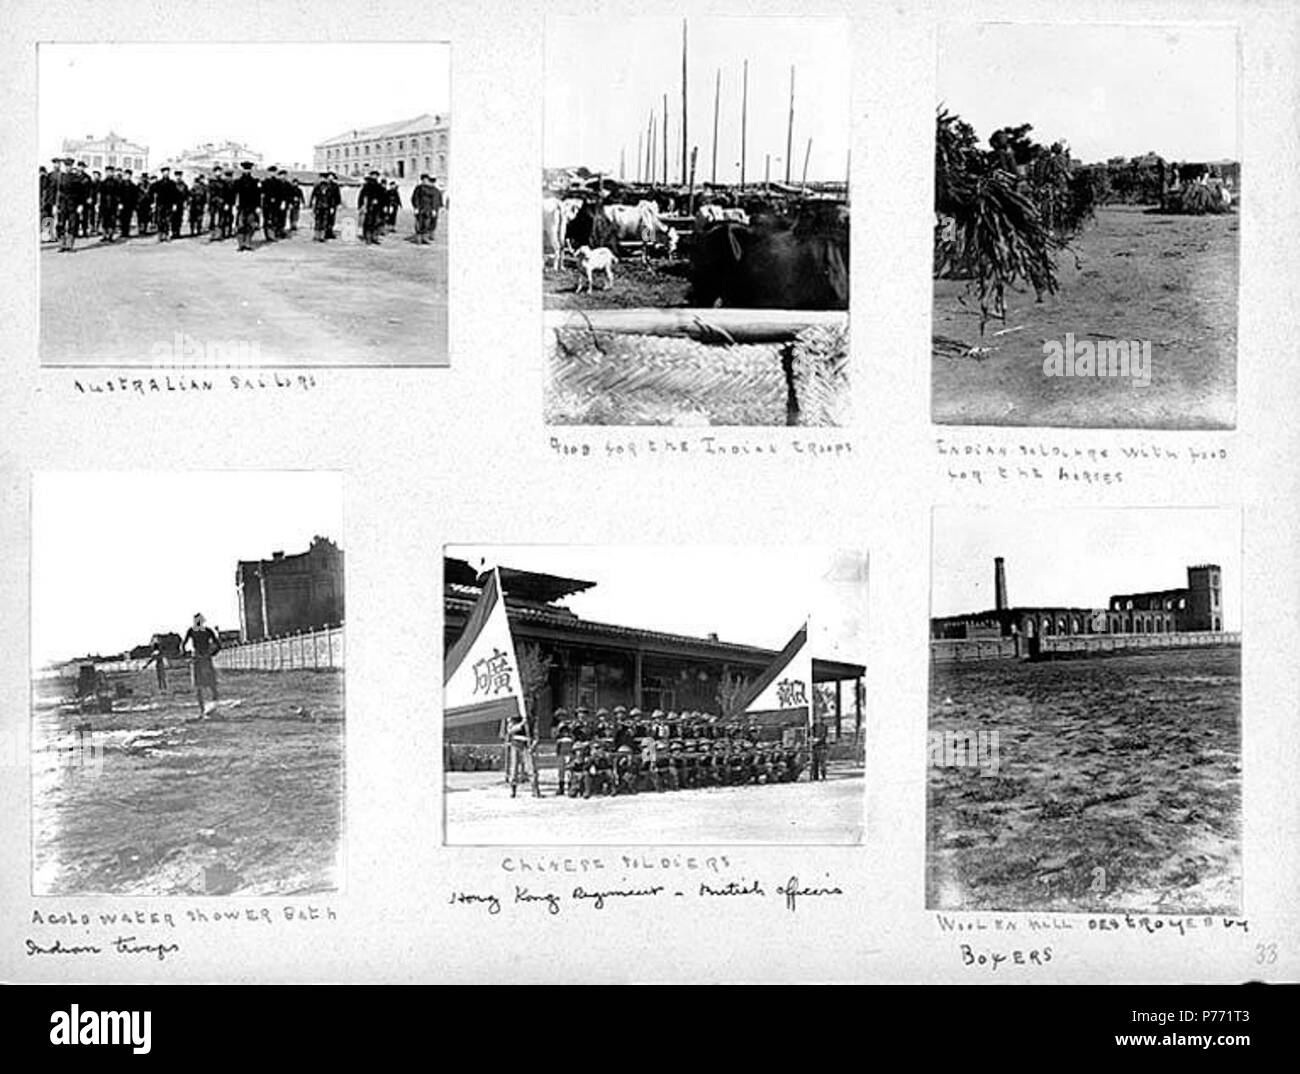 English 7 34 International Soldiers Food And Destruction Ca 1899 1901 English Captions On Album Page Australian Sailors Food For The Indian Troops Indian Soldiers With Food For The Horses A Cold